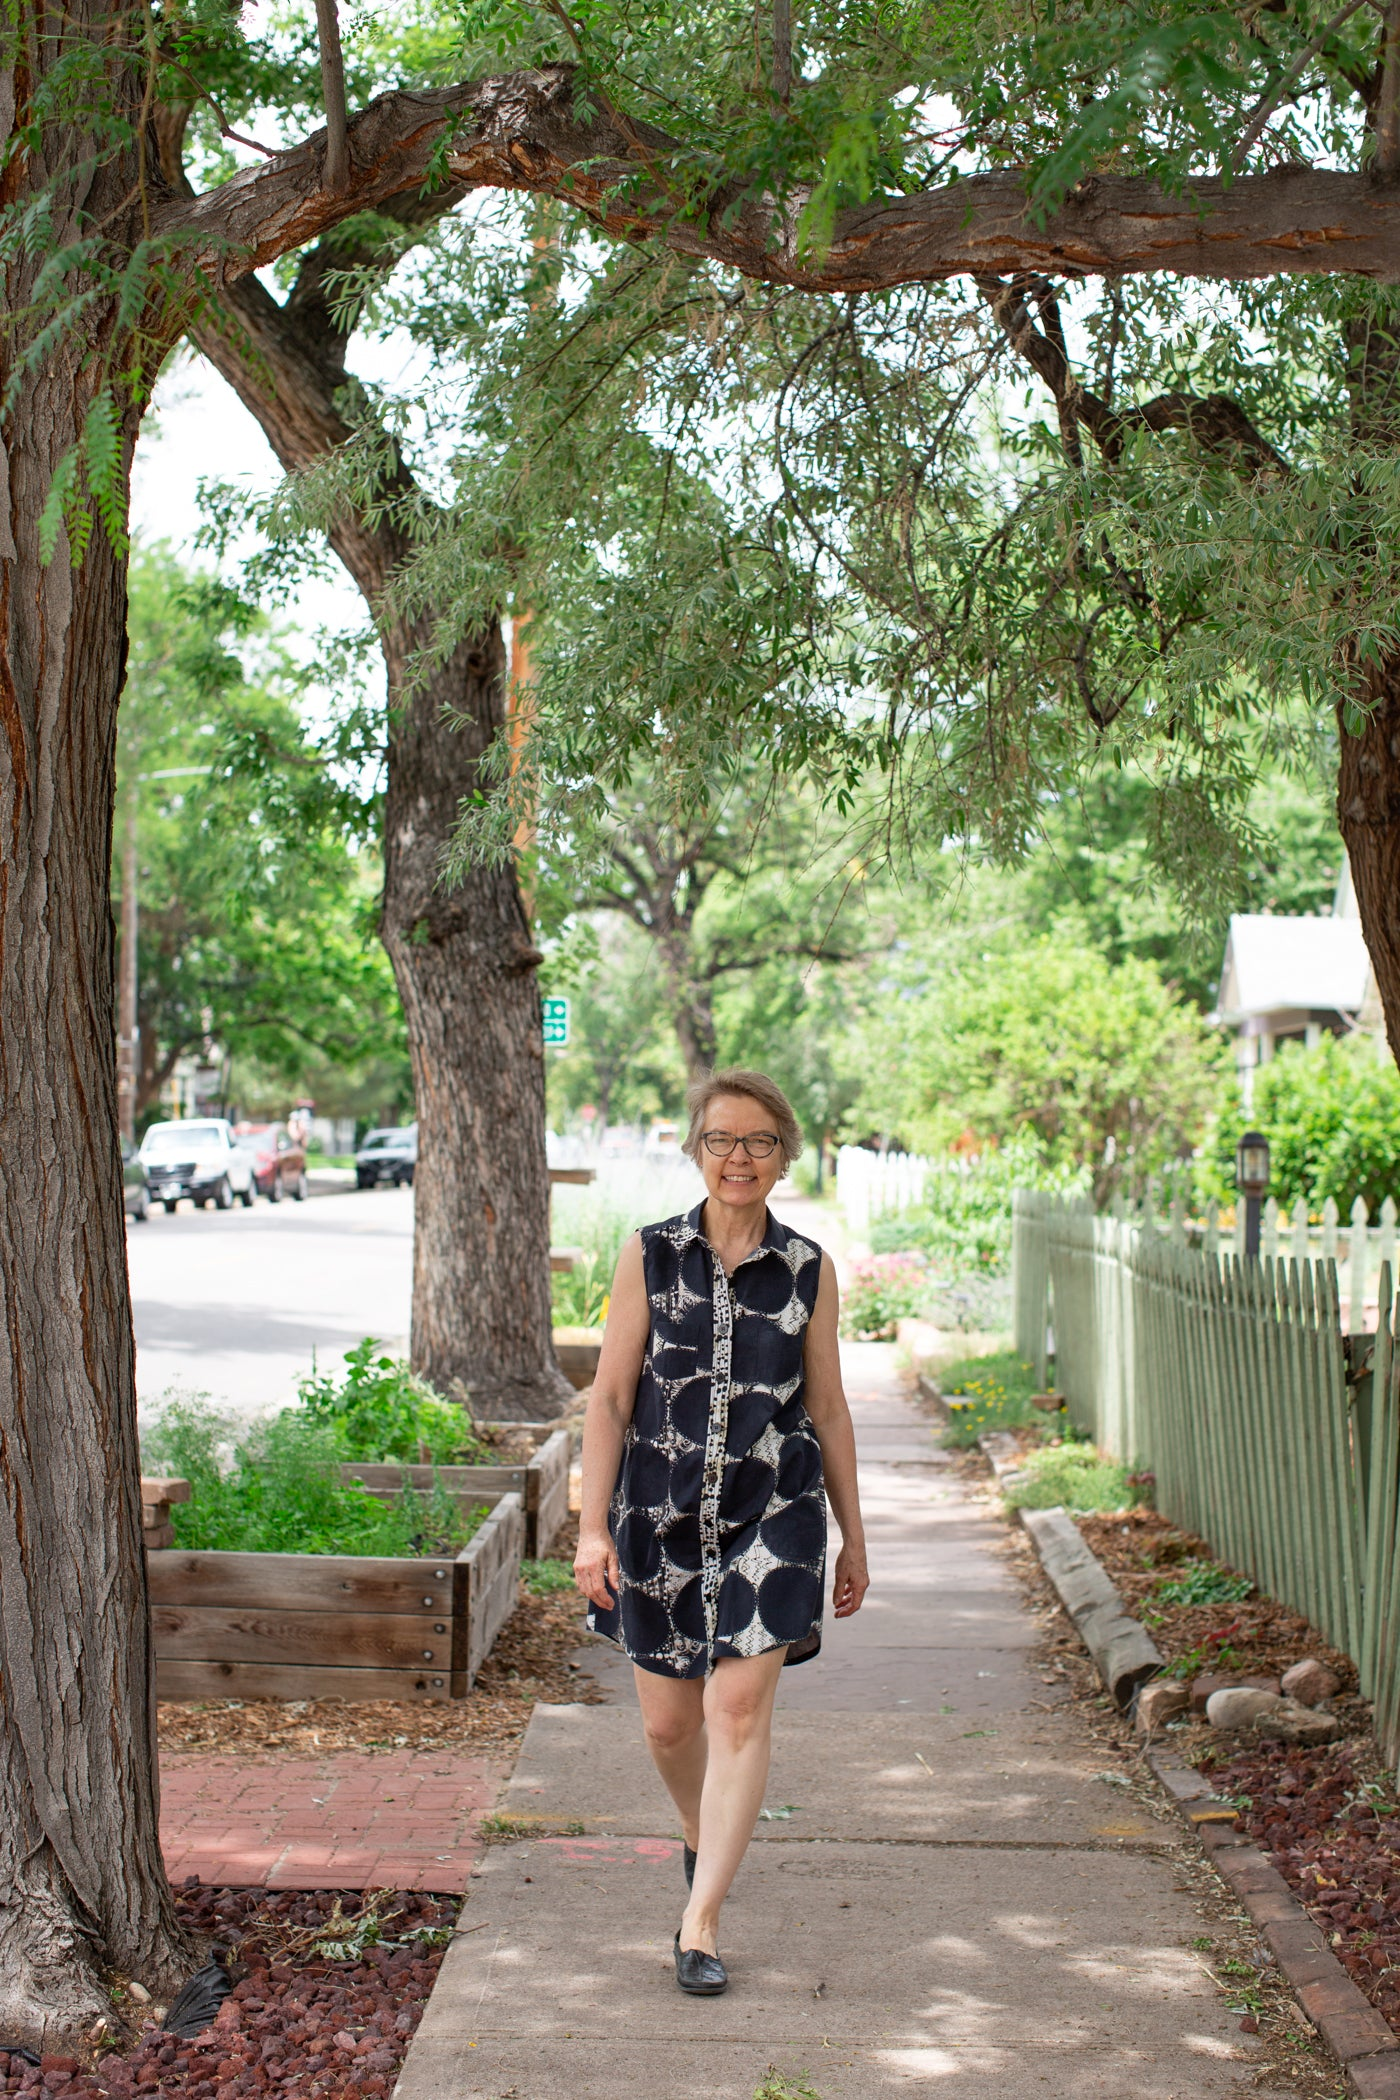 Aleks wearing a sundress walking down the city sidewalk with green trees surrounding her.